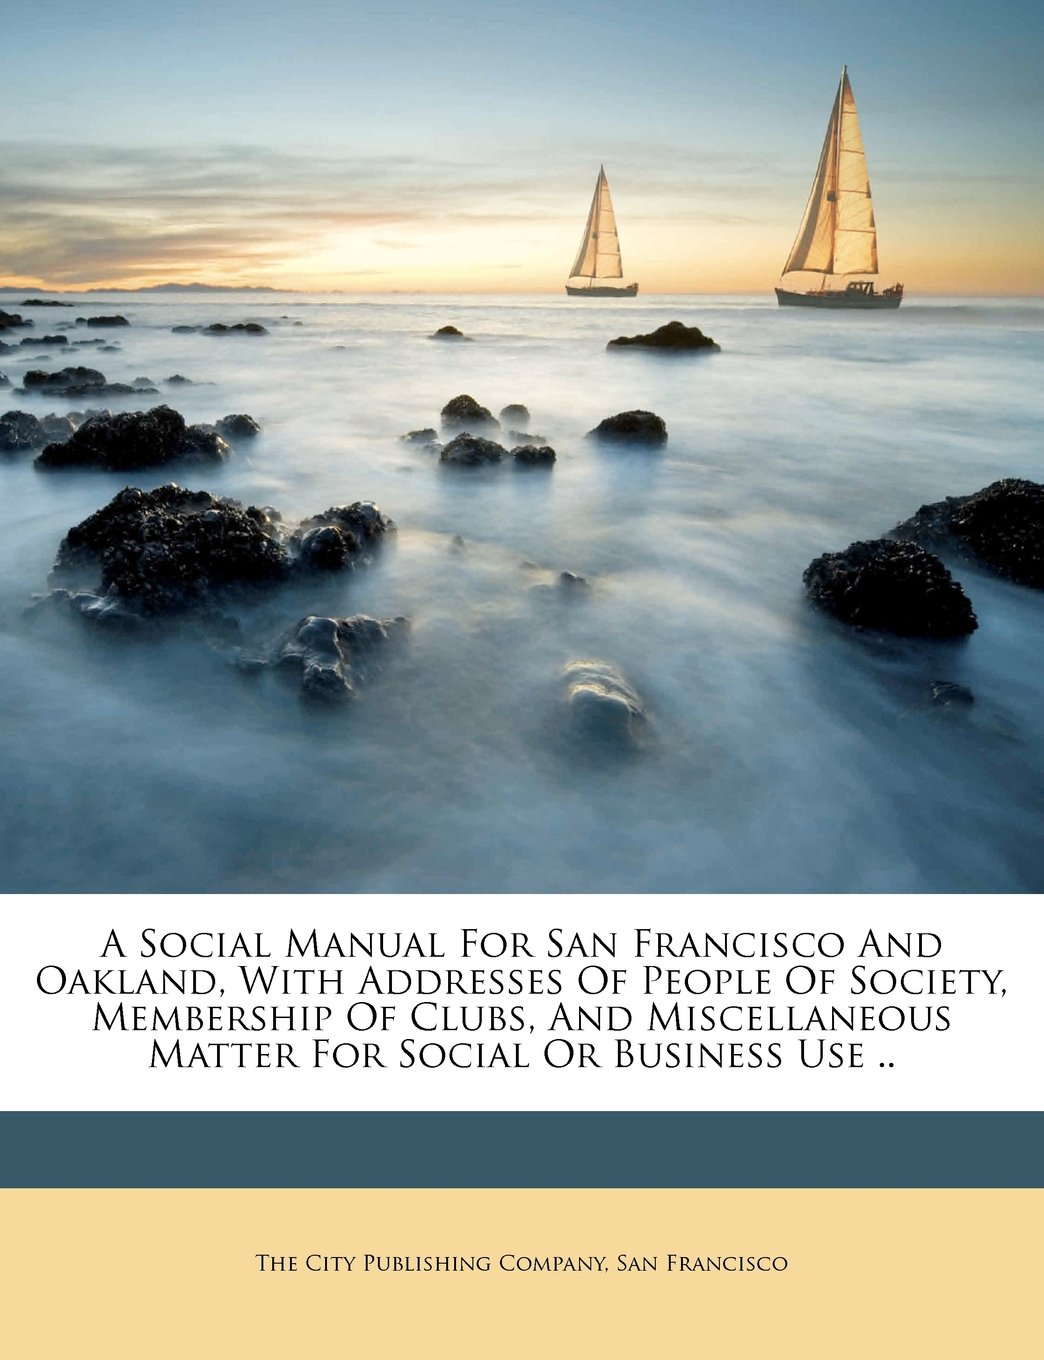 A Social manual for San Francisco and Oakland, with addresses of people of society, membership of clubs, and miscellaneous matter for social or business use .. ebook